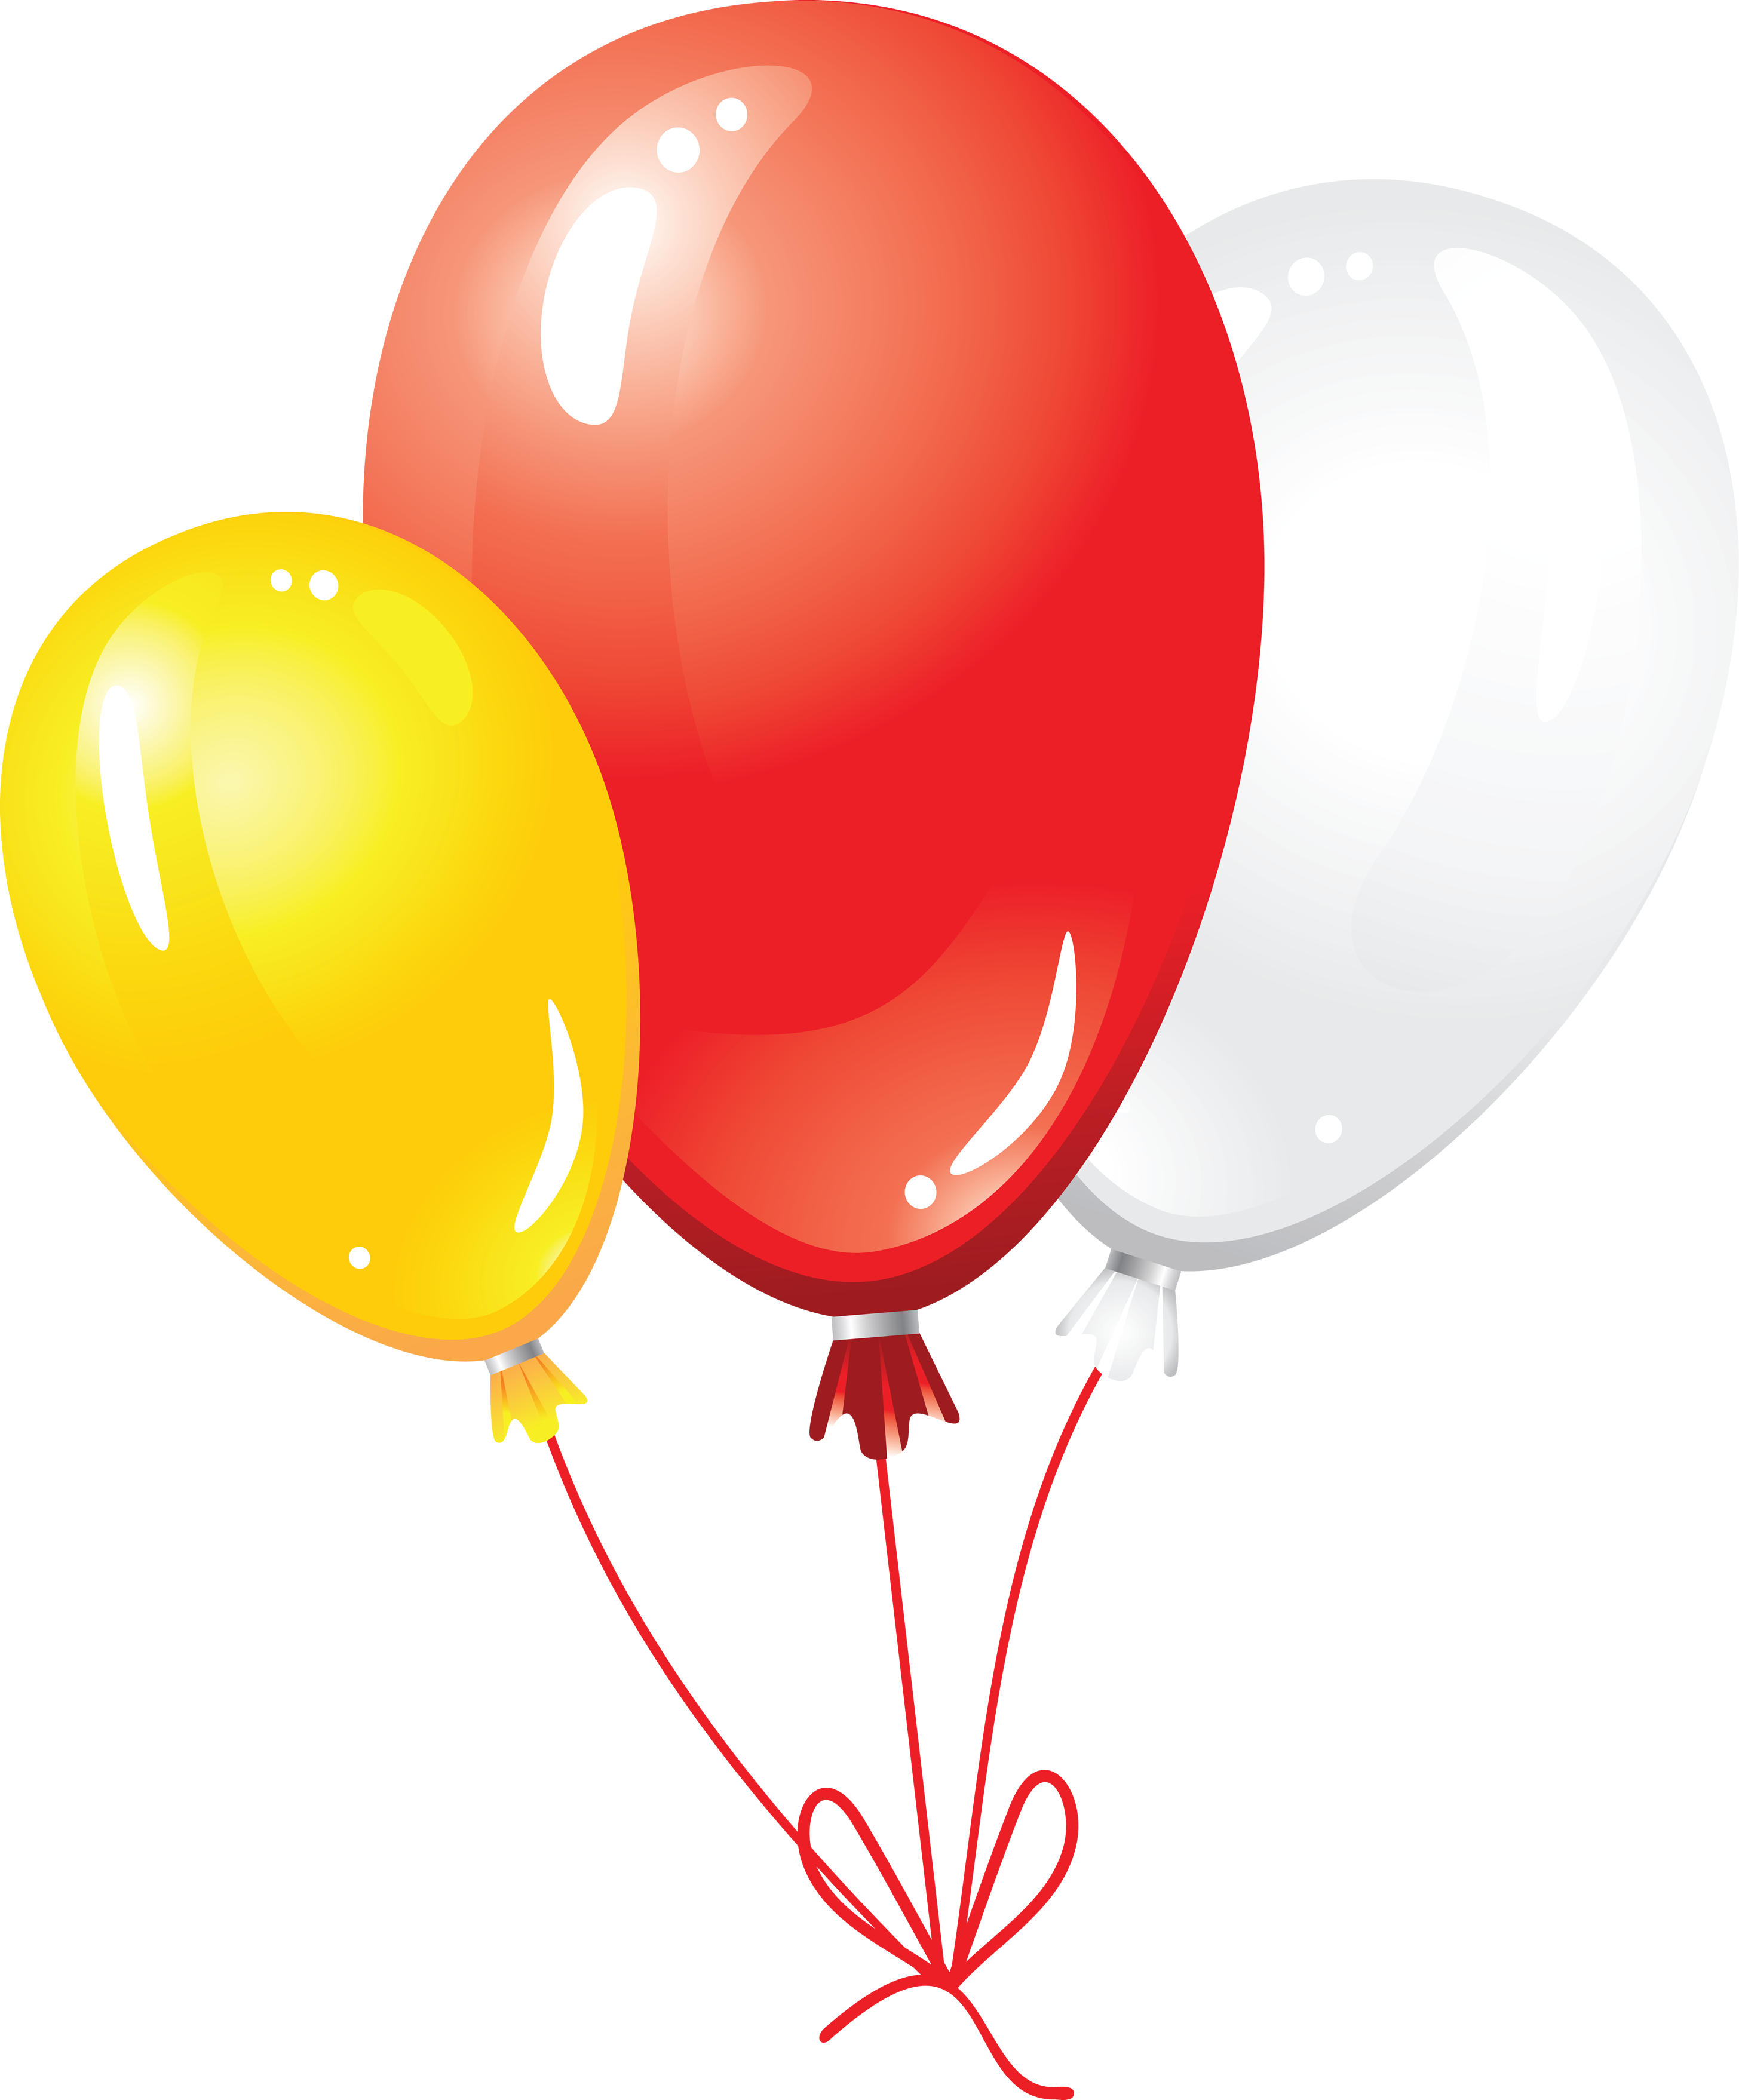 Balloons png. Balloon images free picture